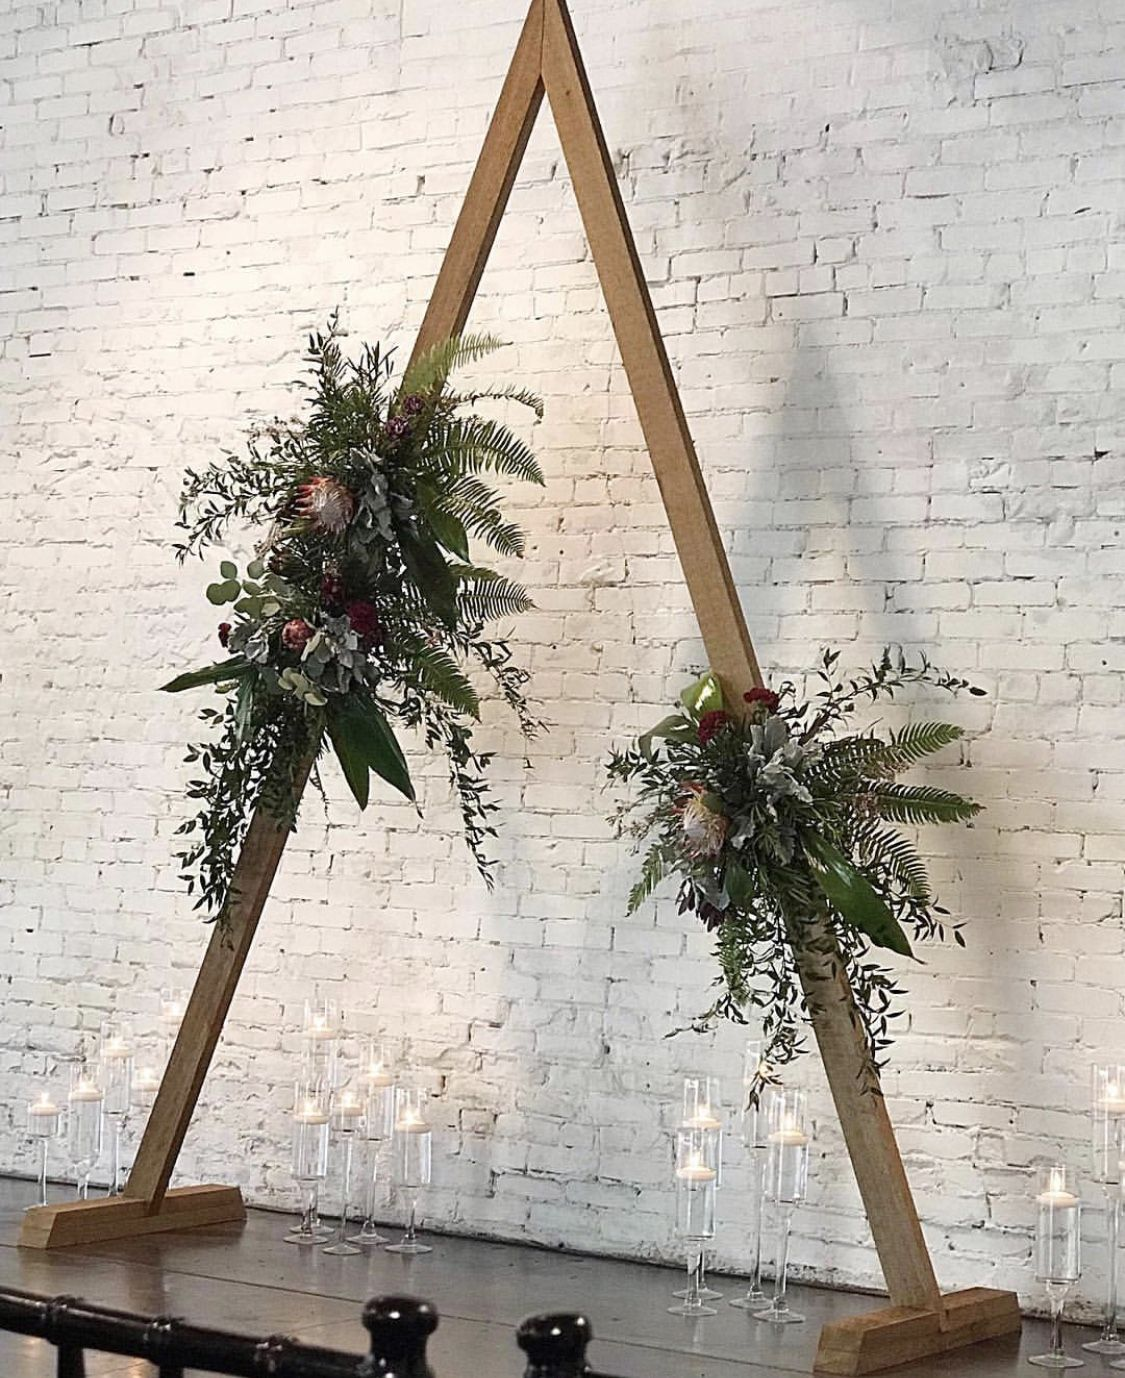 Wedding Arch Diy Candle Centerpieces Bohemian White Brick Wall With Industrial And Urban With Boho Style T Diy Wedding Arch Wedding Arch Winter Wedding Arch